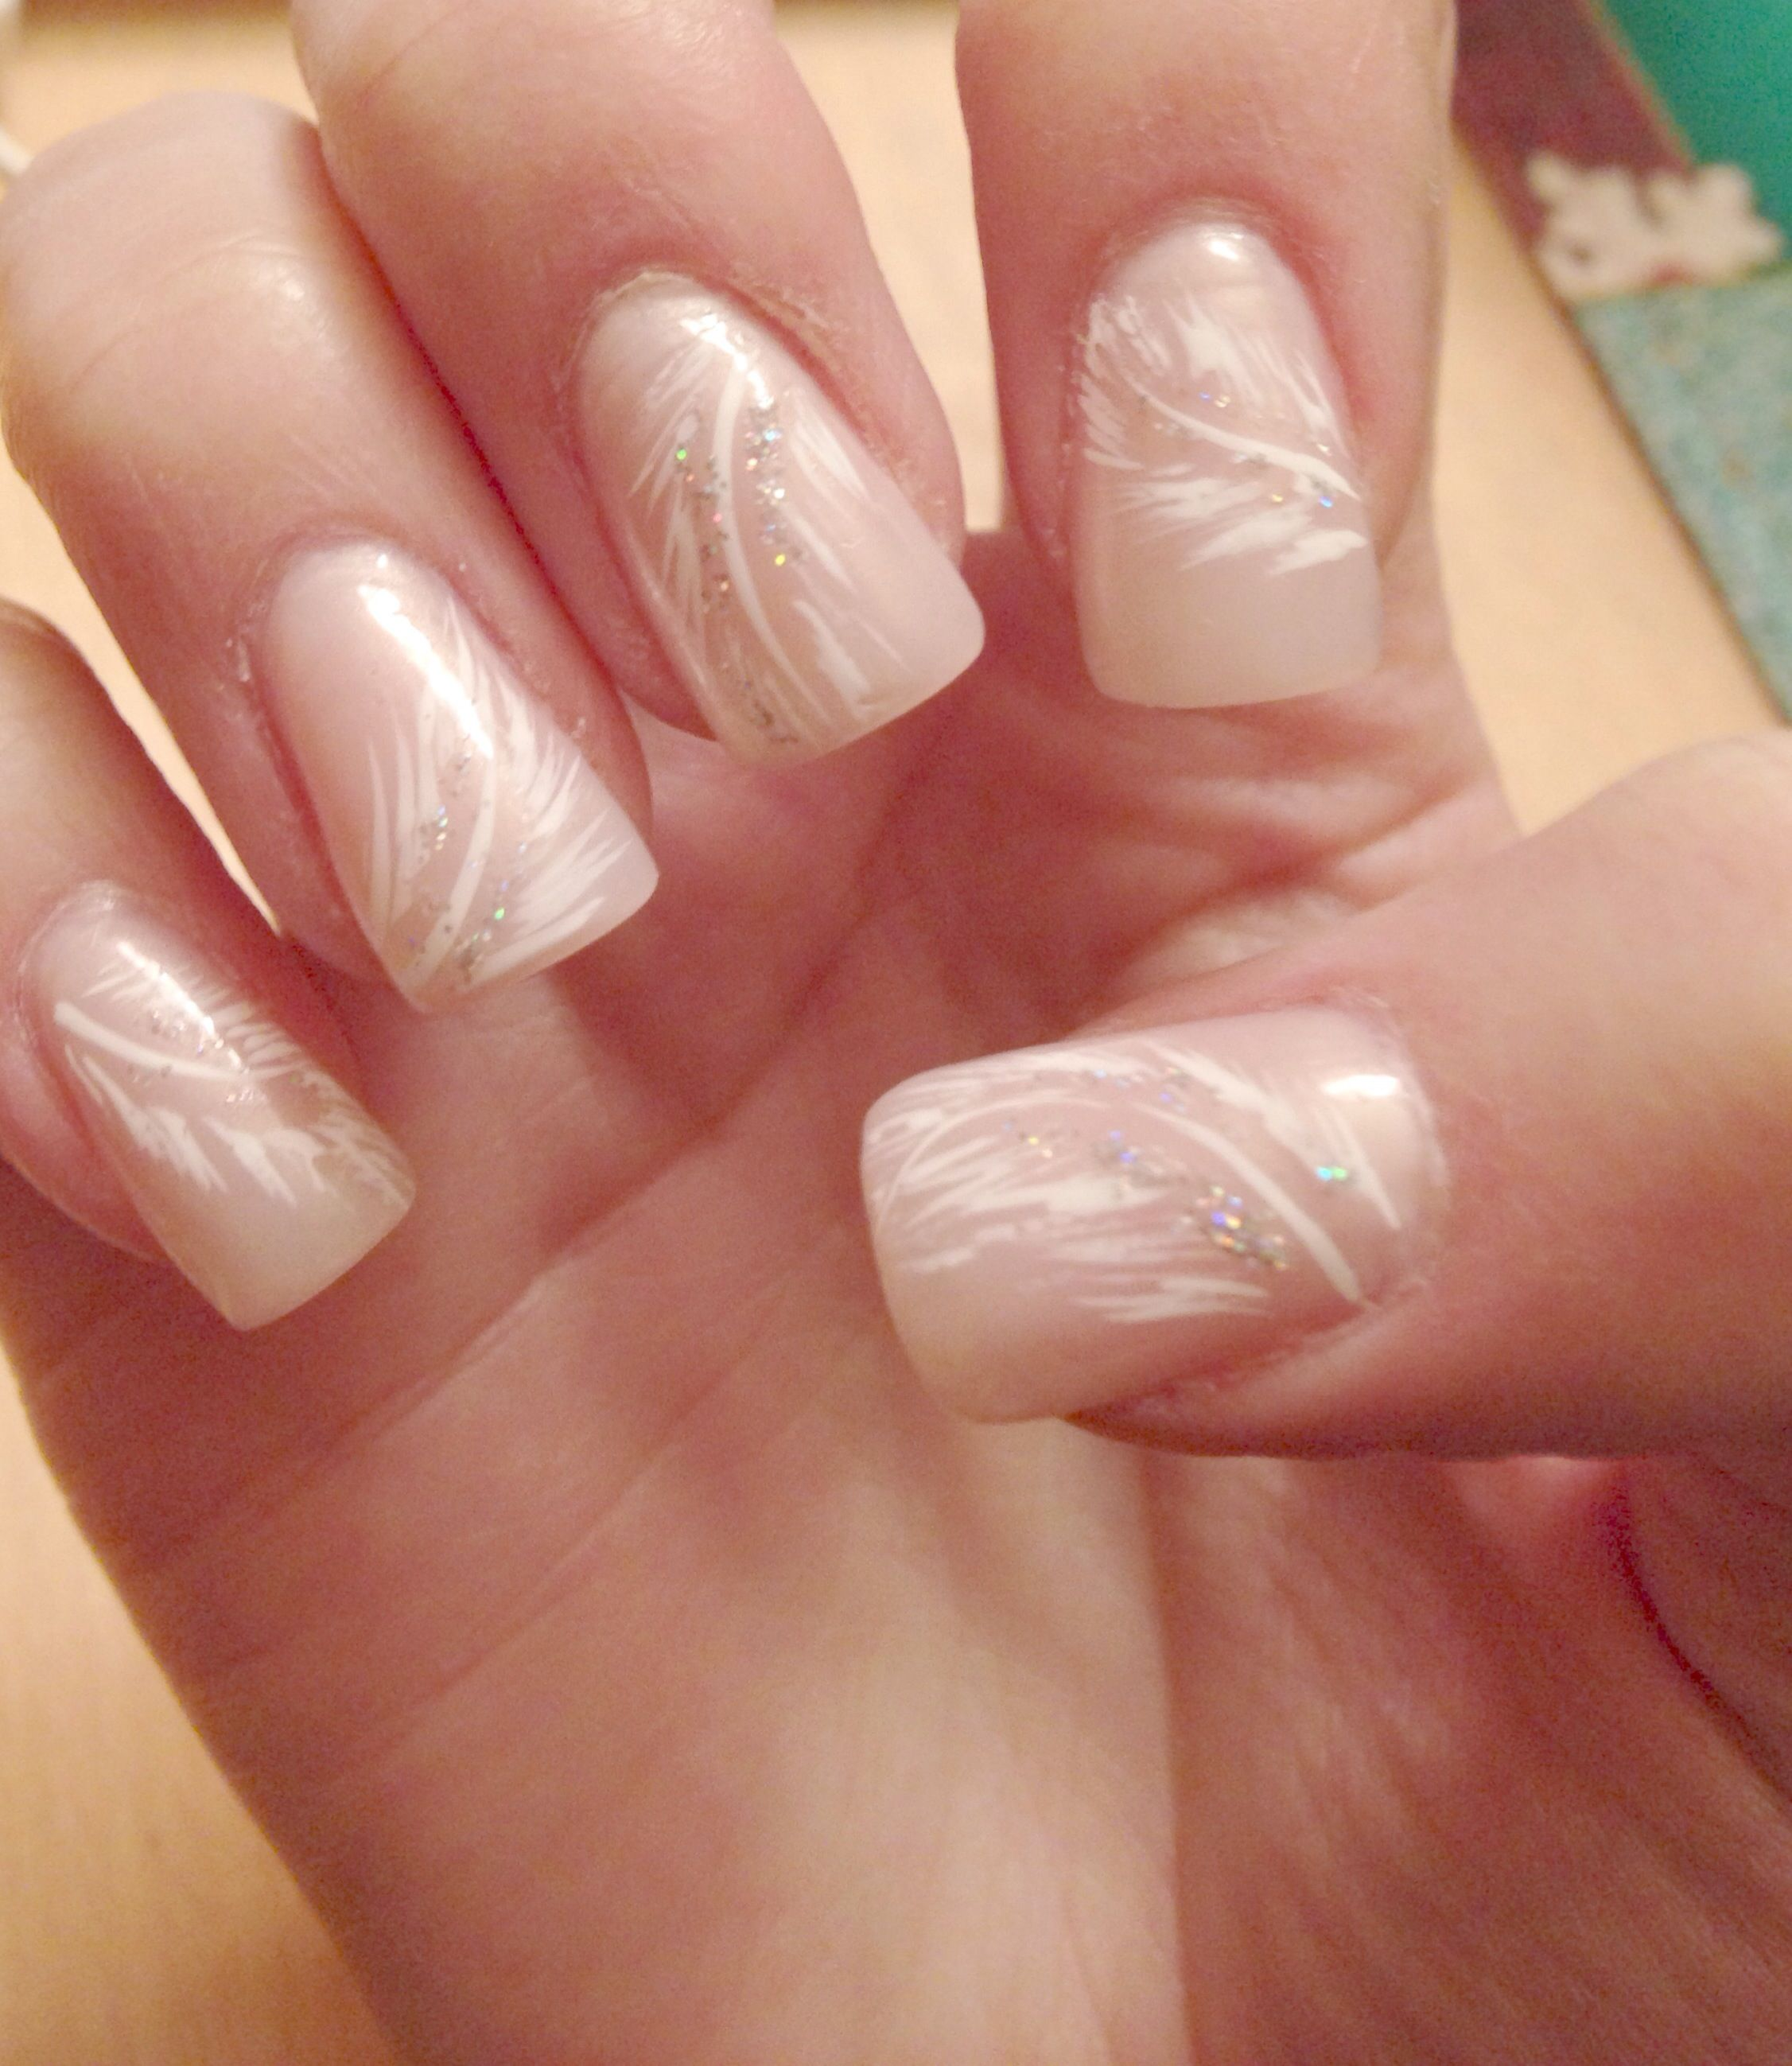 Pink acrylic nails with a feather design nails pinterest pink